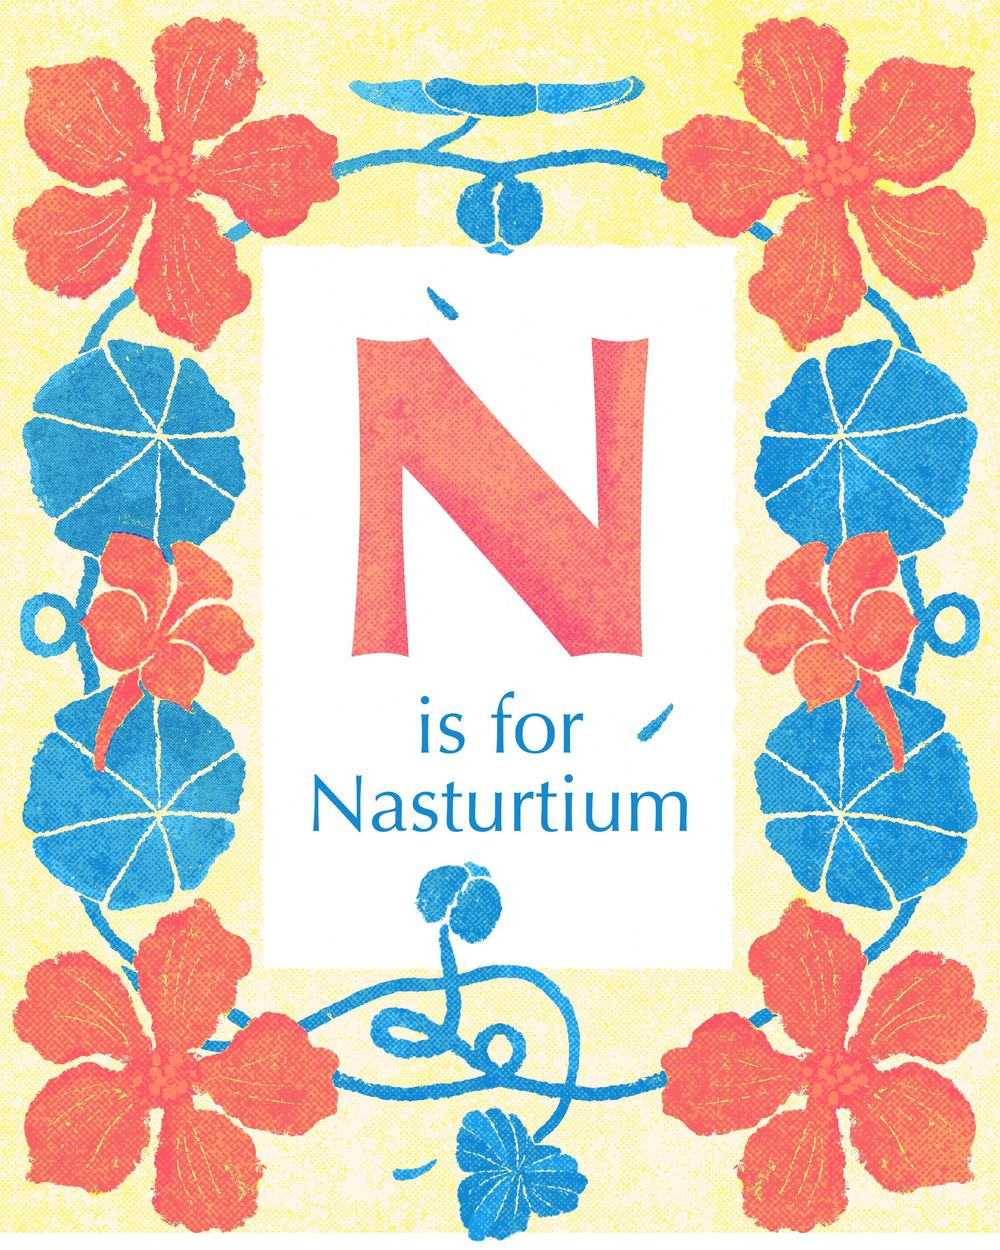 Nasturtiums (you can eat them!) - image 2 - student project